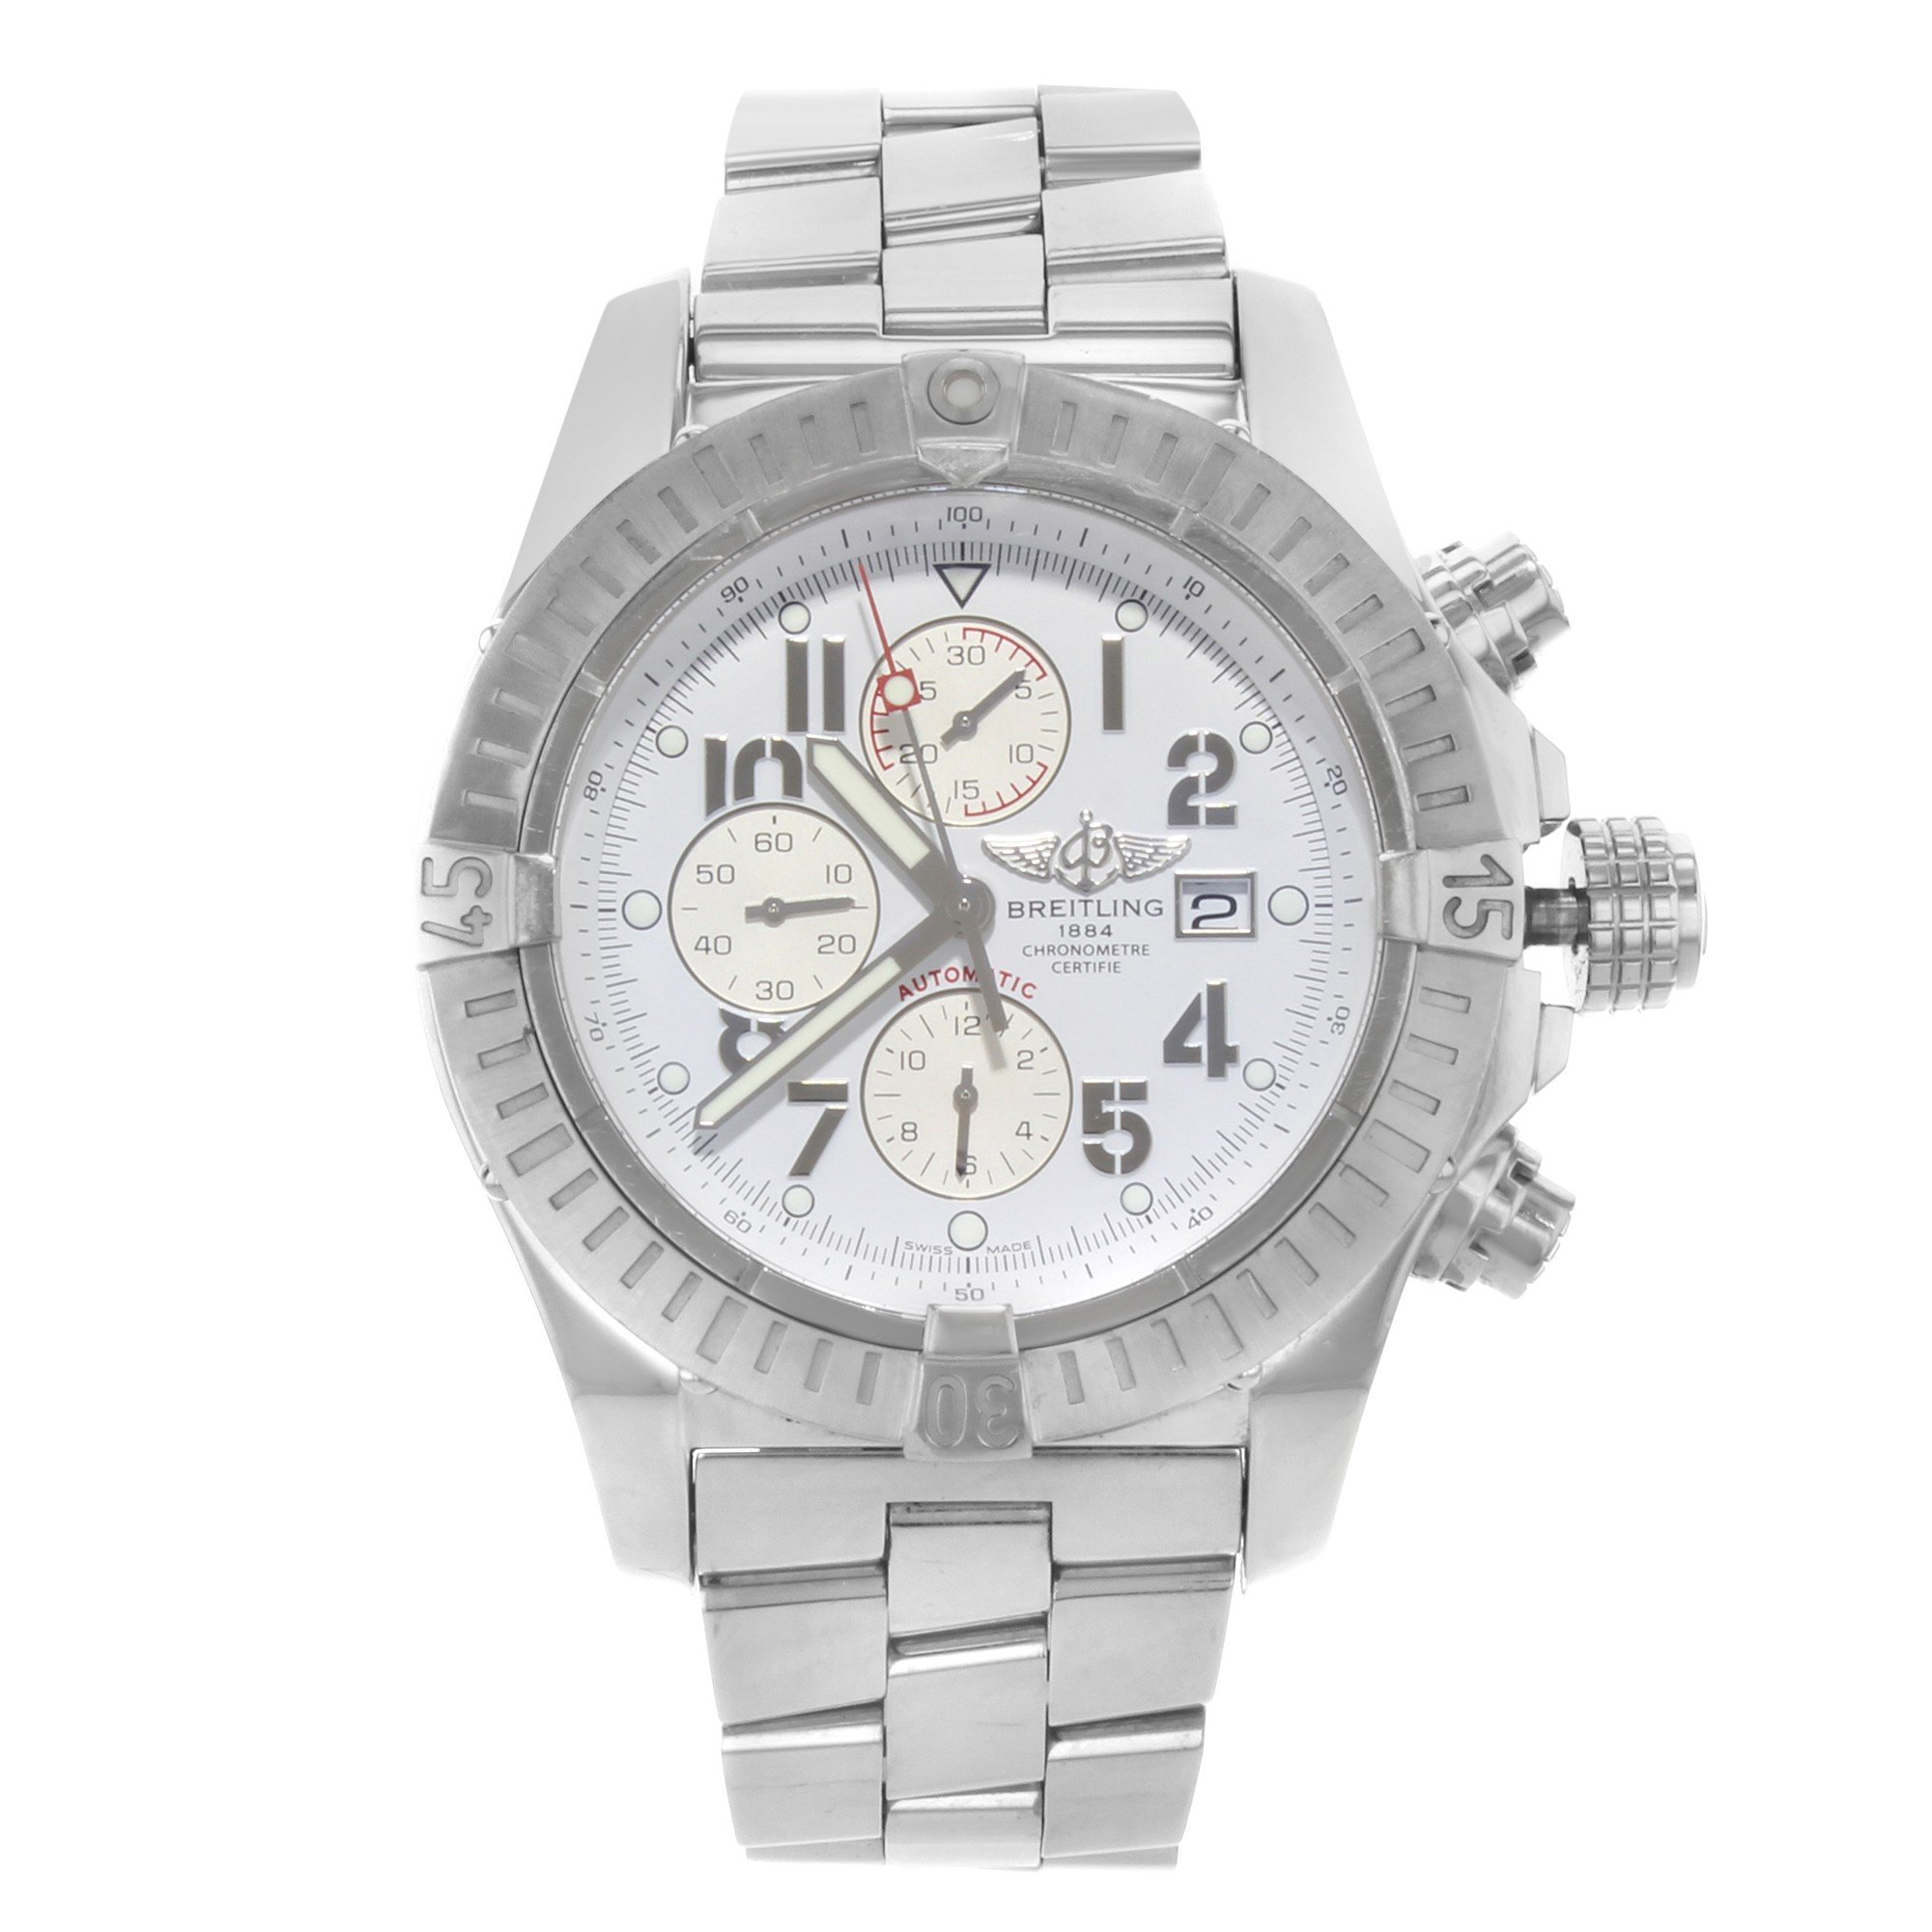 Breitling Super Avenger A1337011/A699-135A Steel Automatic Men's Watch(Certified Pre-owned)